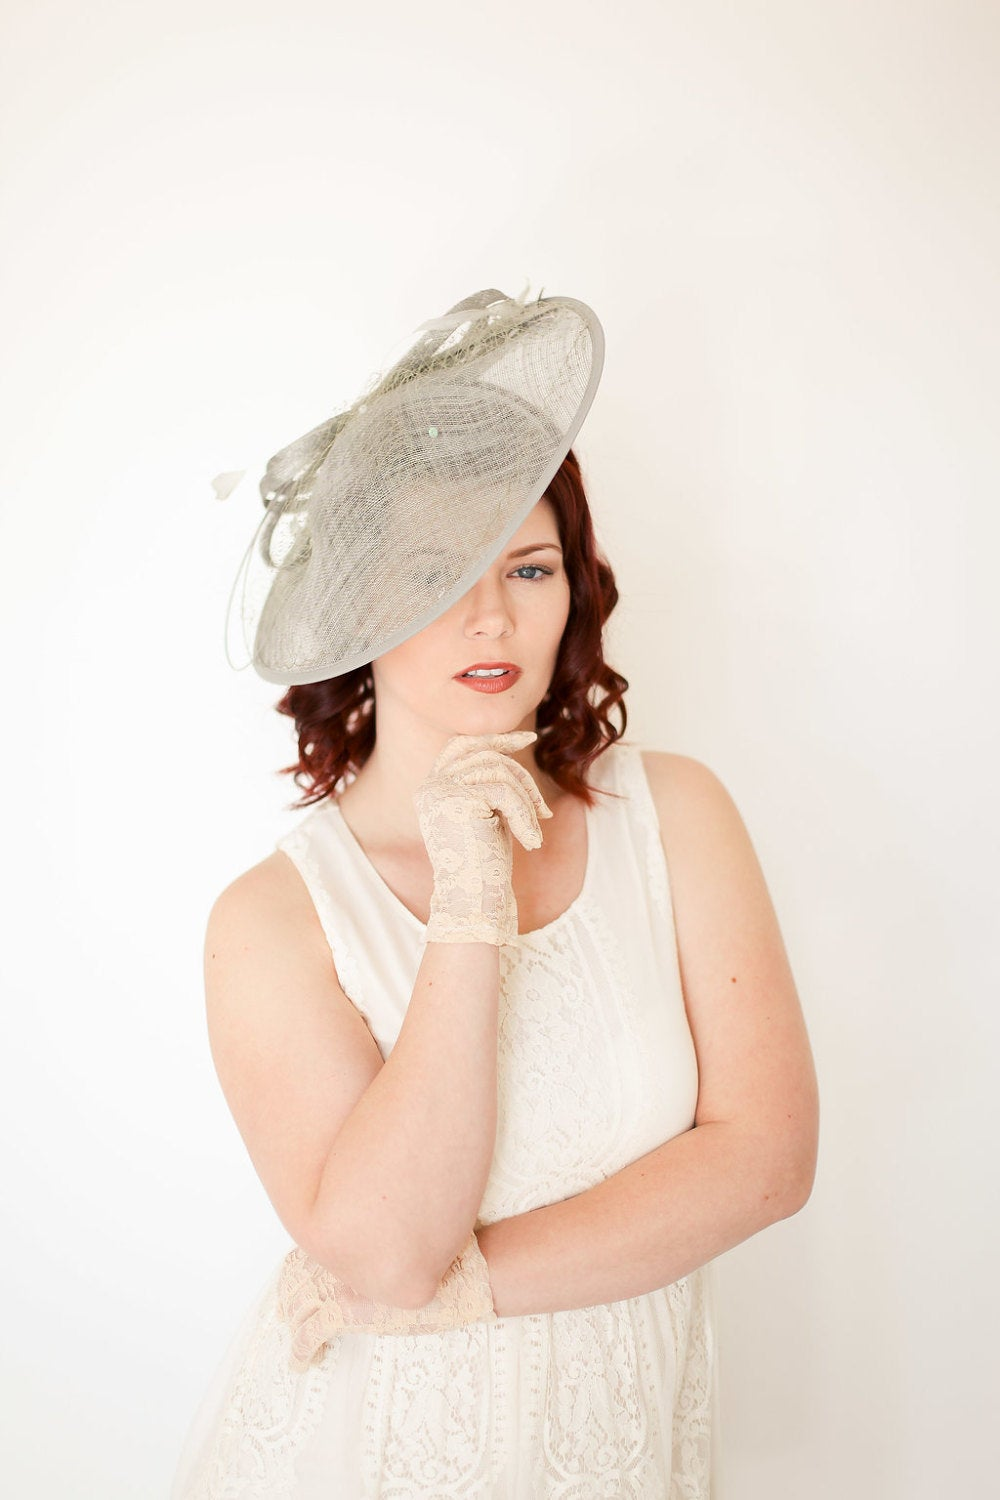 Gray Fascinator, Kentucky Derby Hat, Tea Party Hat, Church Hat, Derby Hat, Fancy Hat, Royal Hat, Tea Party Hat, wedding hat